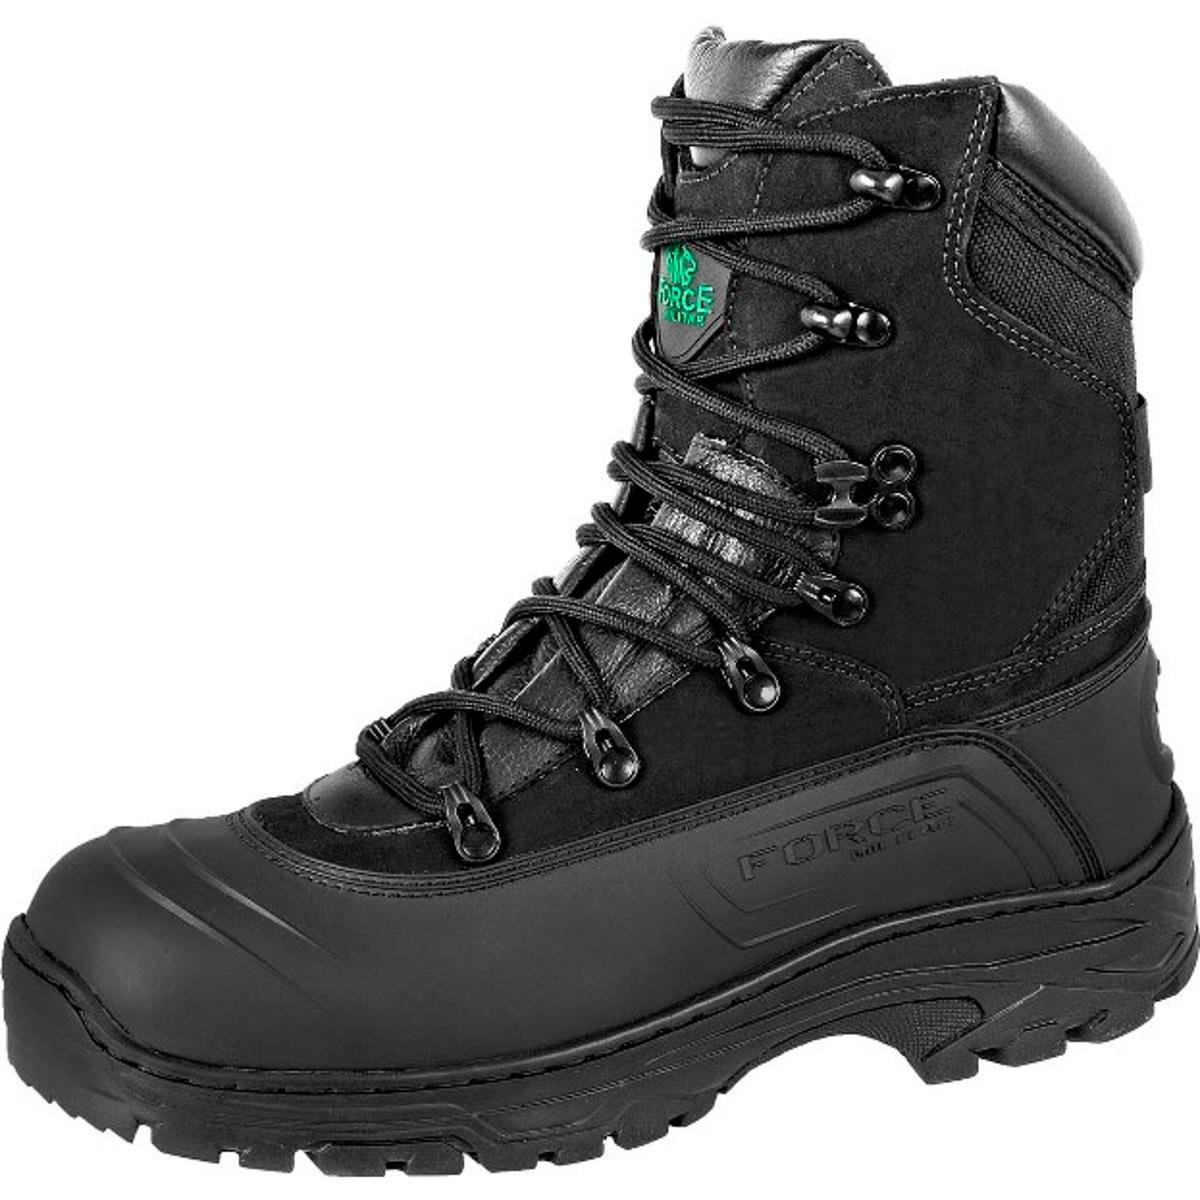 Force Coturno Tático Coturno Force Preto Militar Militar qSxwE458f